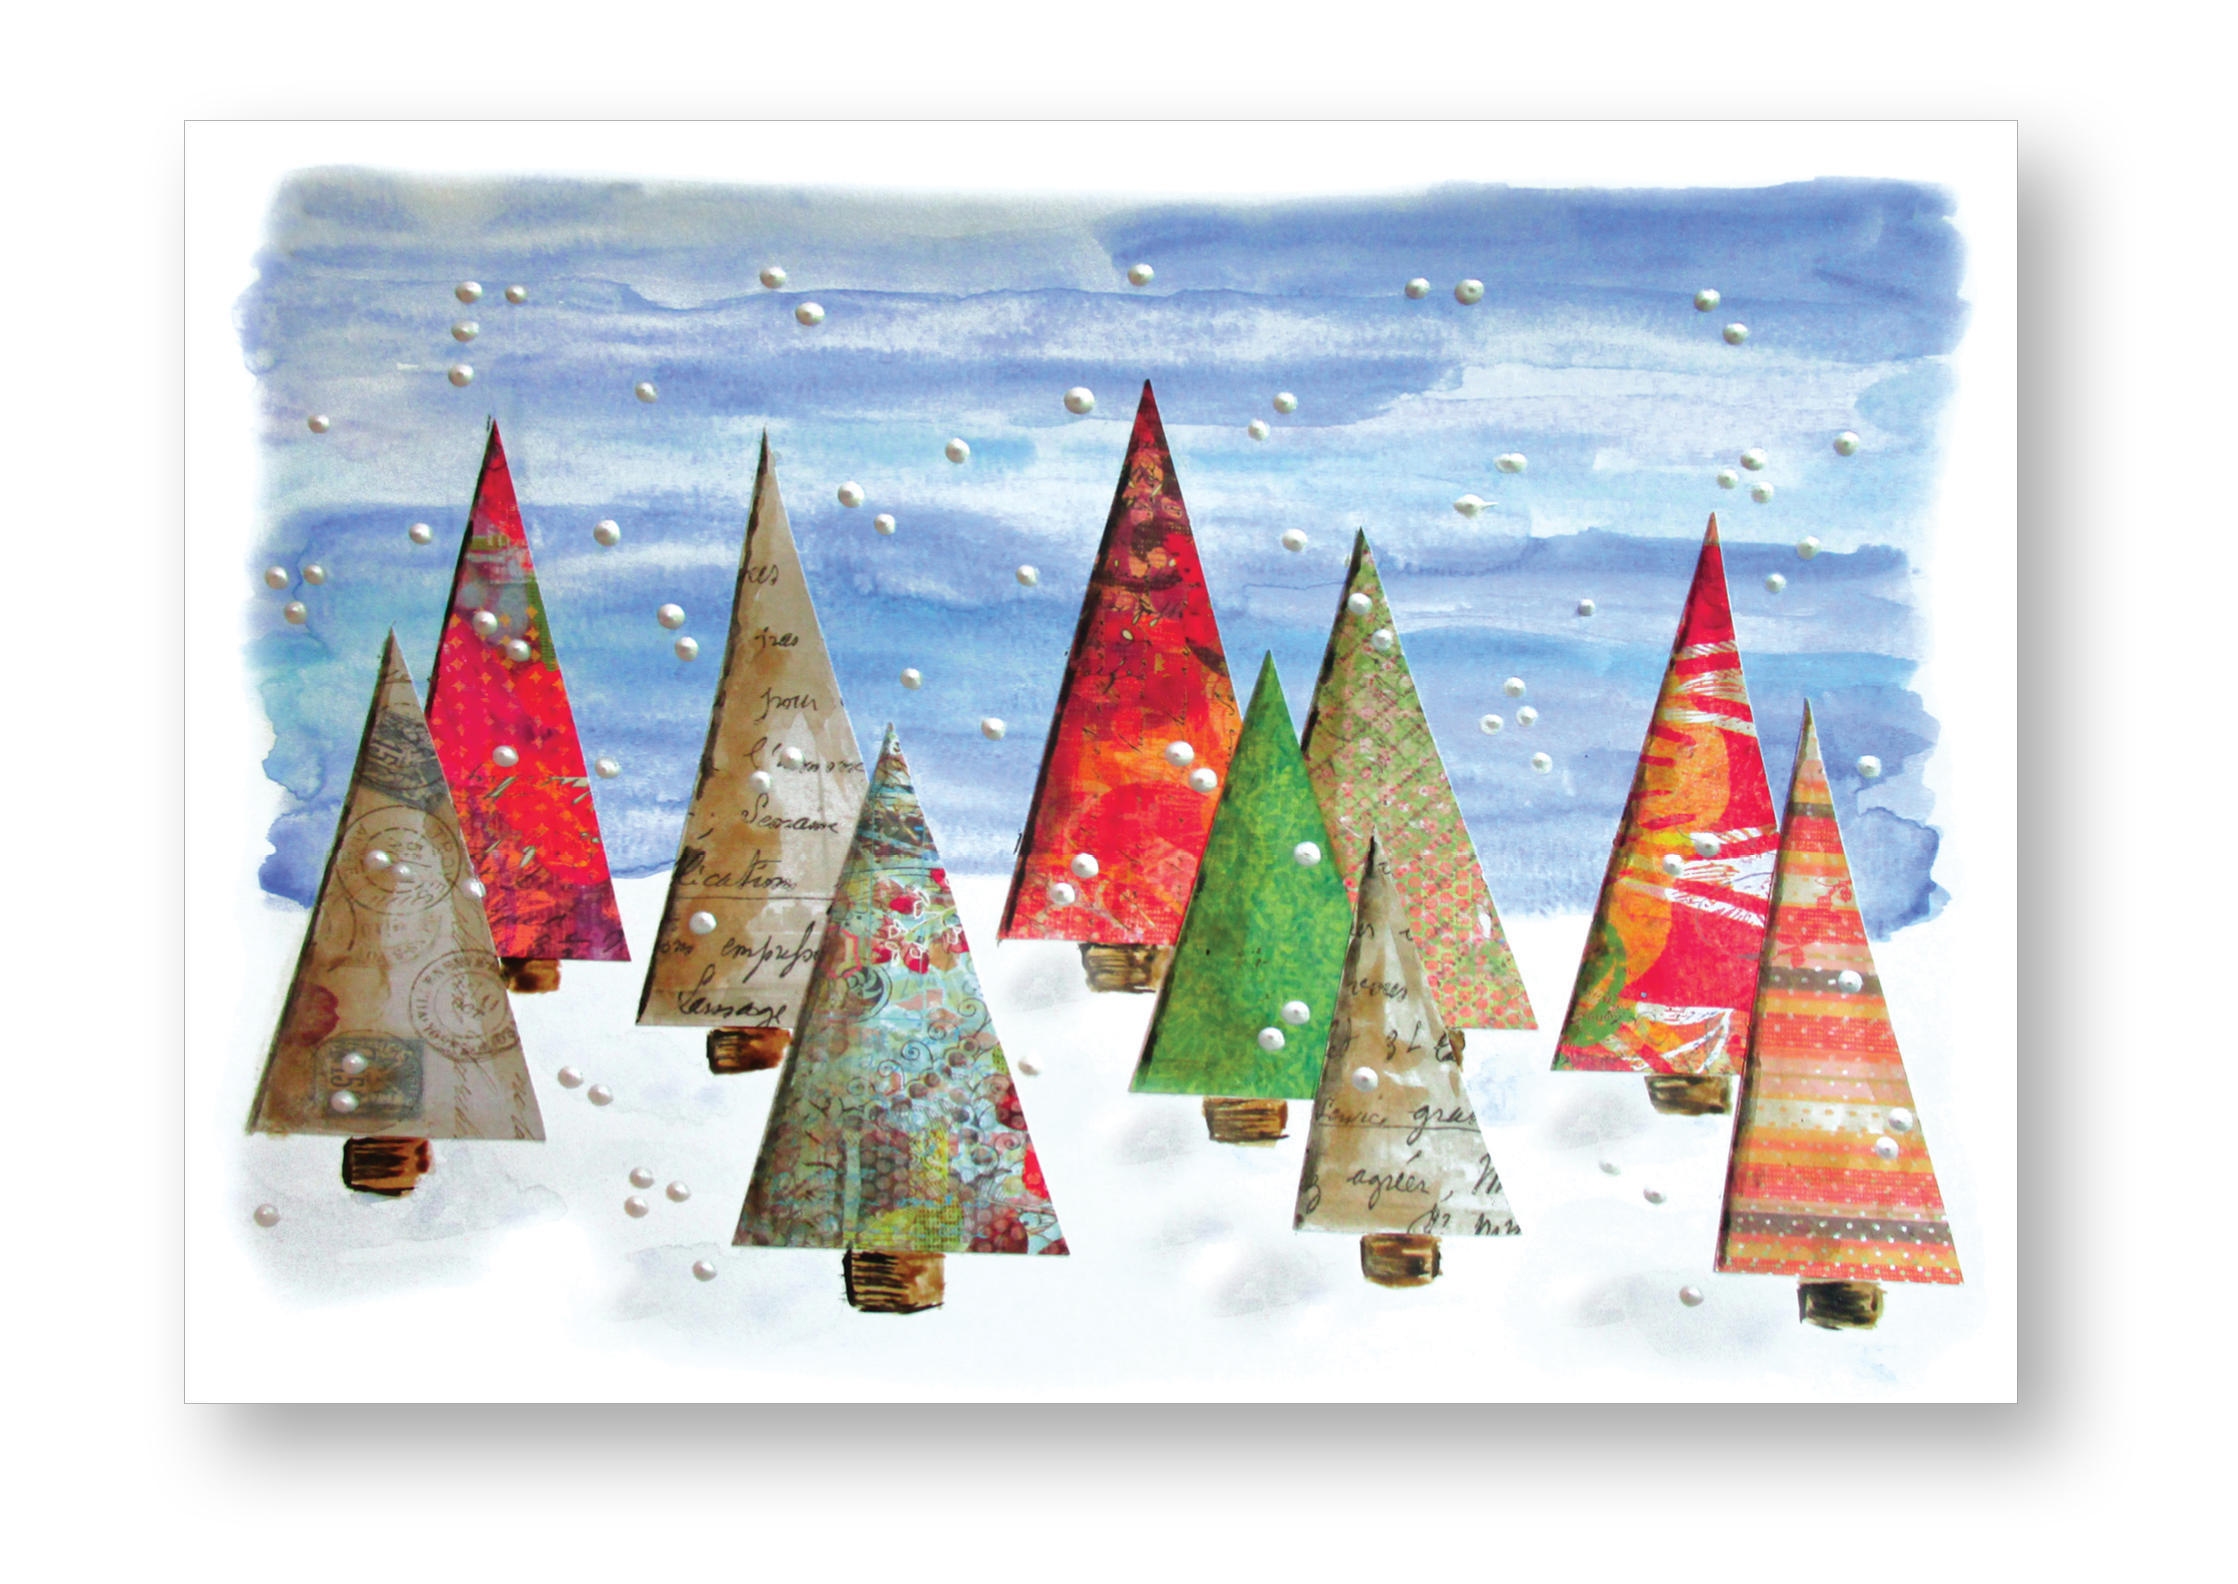 2016 holiday card with watercolor and mixed-media collage of trees and snowflakes